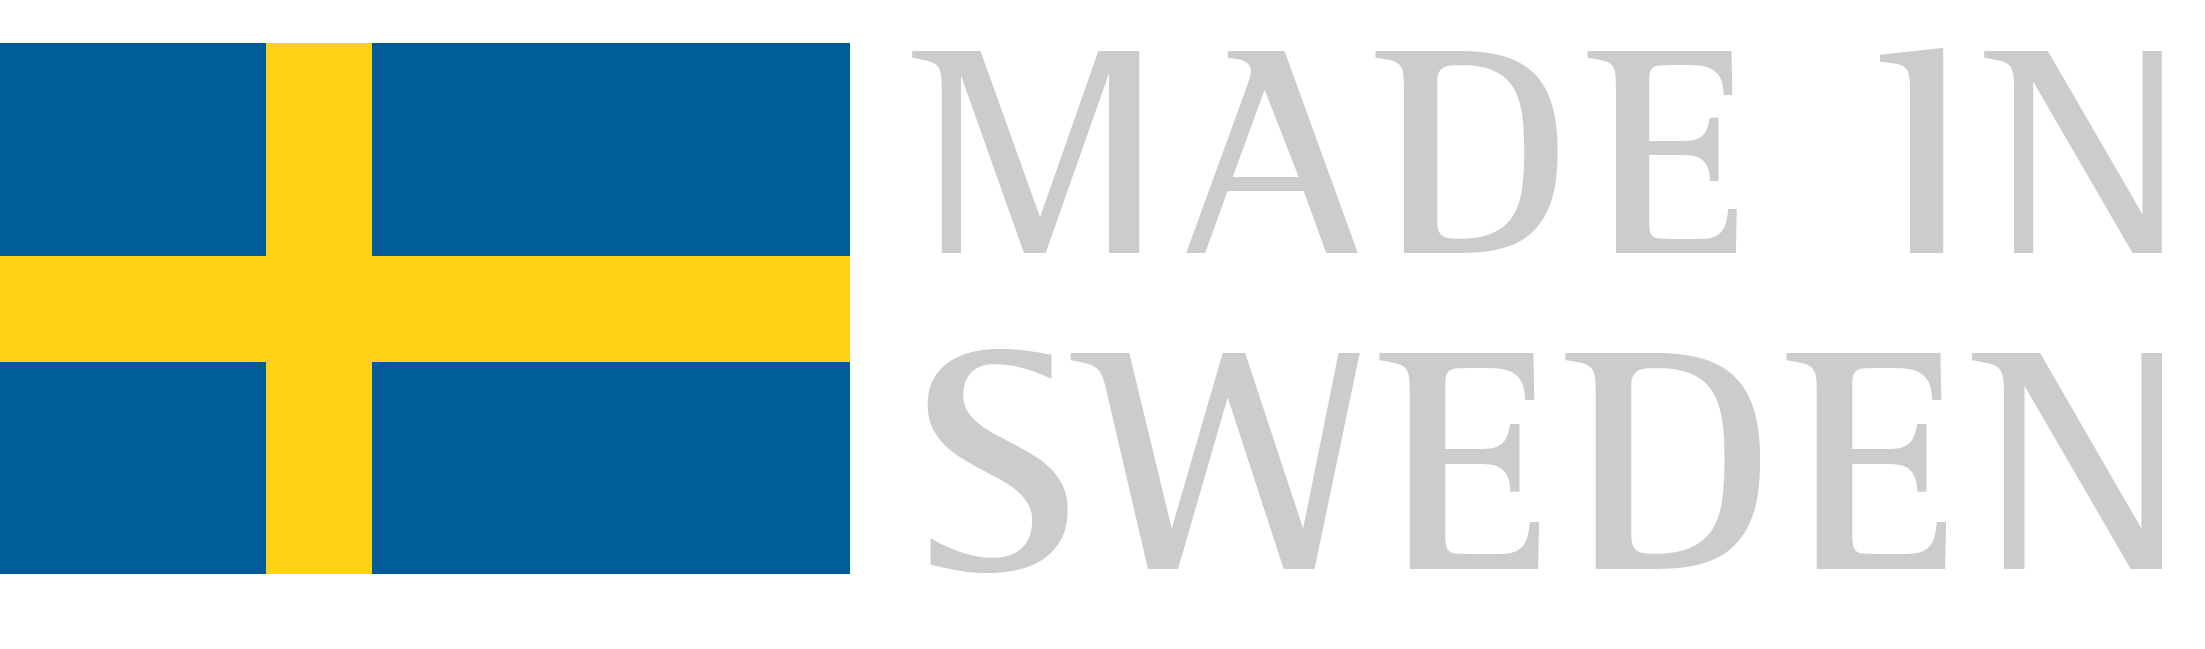 madeinsweden_icon_grey